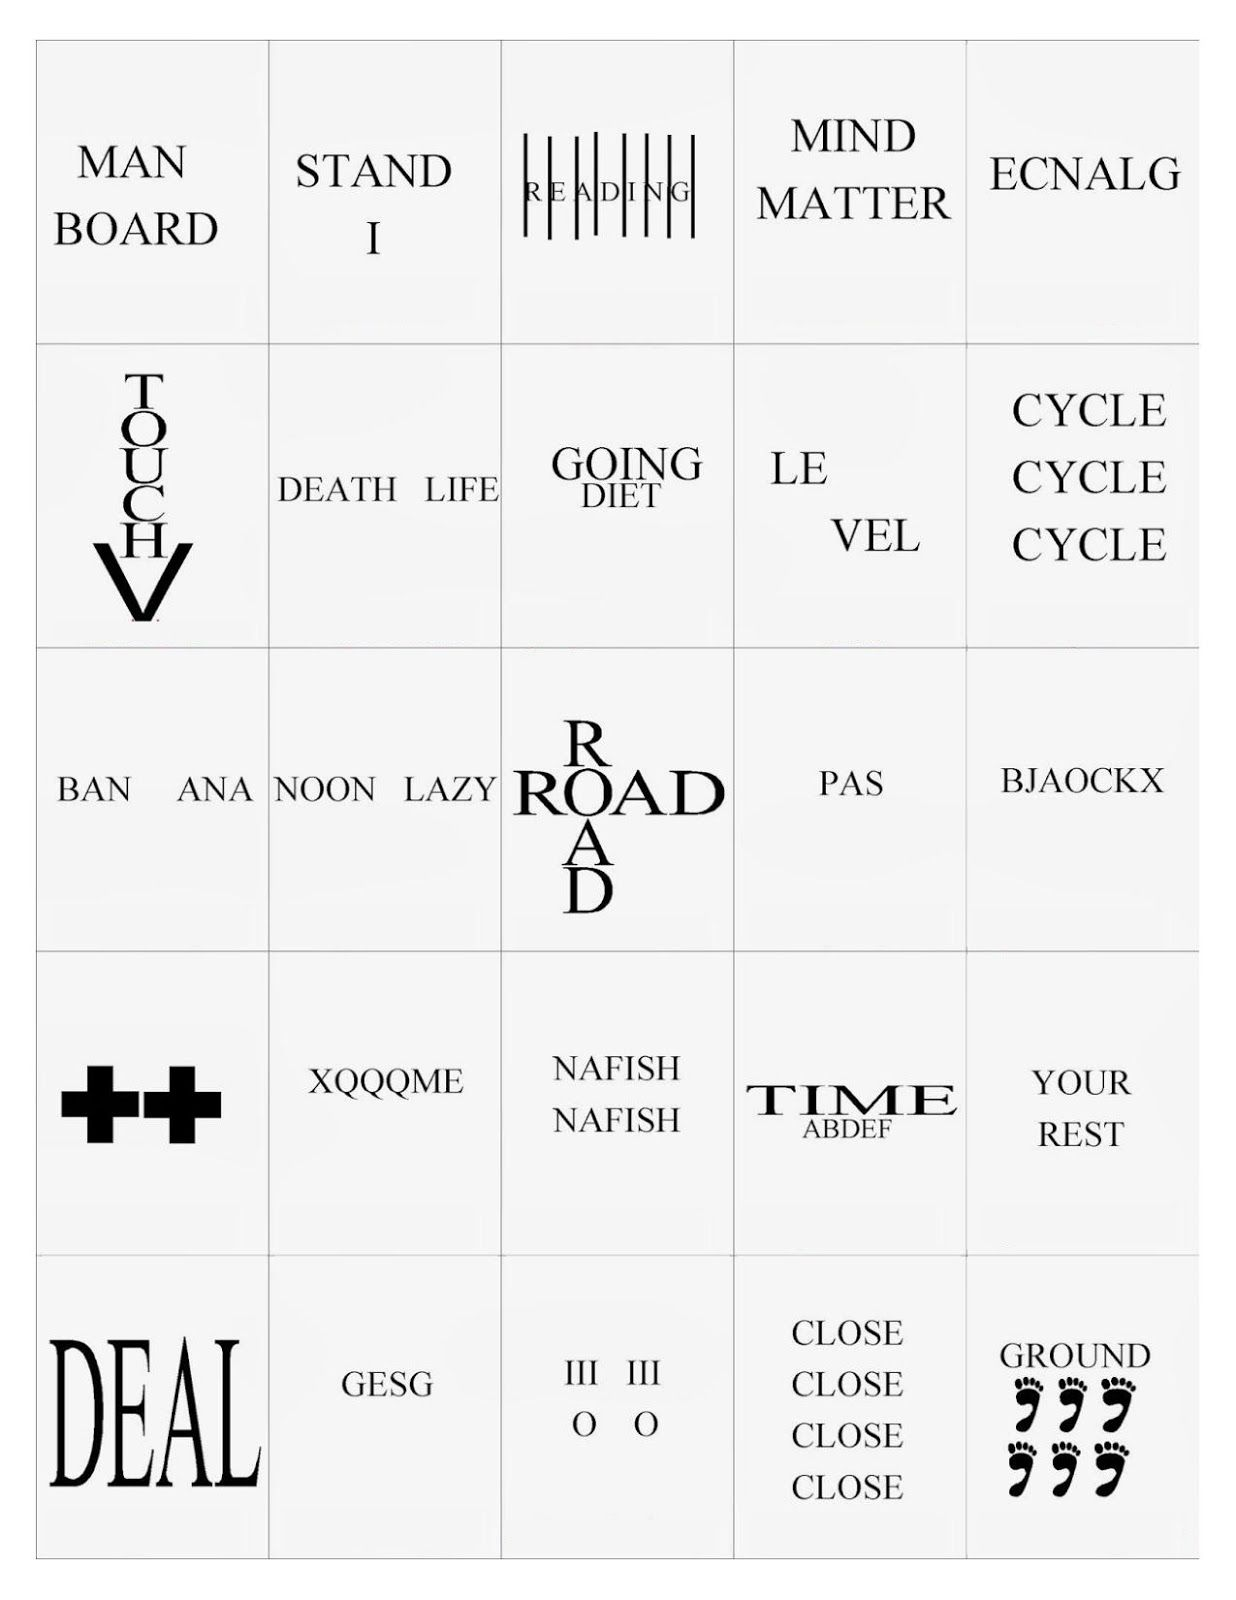 Rebus Puzzle Brain Teasers Worksheets Printable Worksheets And Activities For Teachers Parents Tutors And Homeschool Families